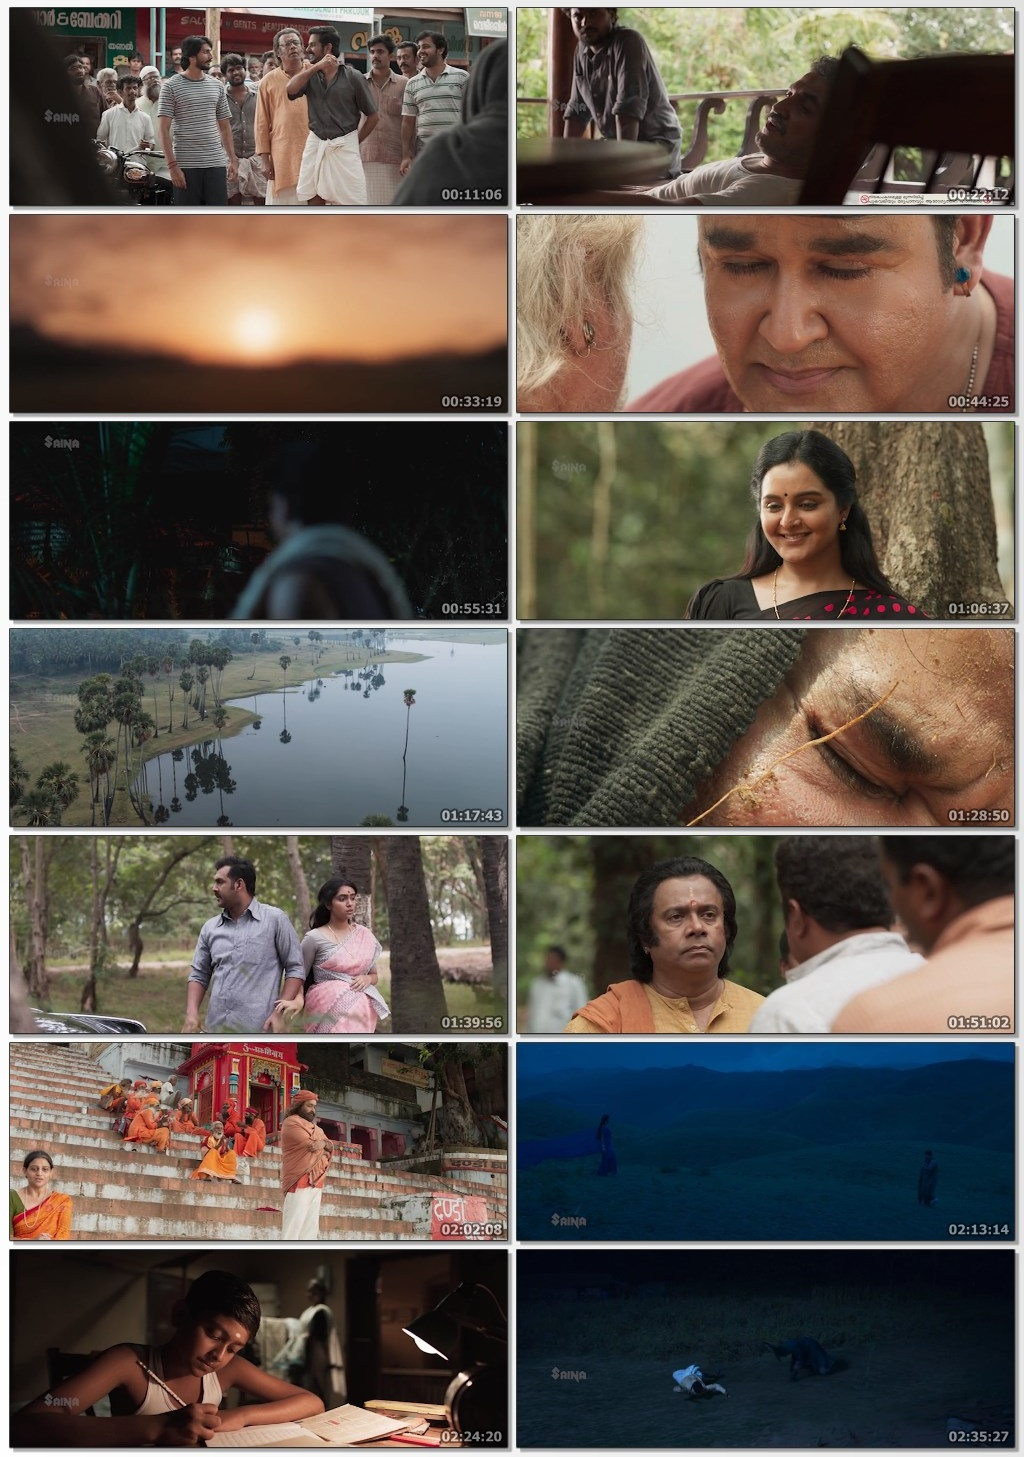 Odiyan-2018-www-1kmovies-net-Hindi-Dual-Audio-720p-UNCUT-DVDRip-1-8-GB-mkv-thumbs